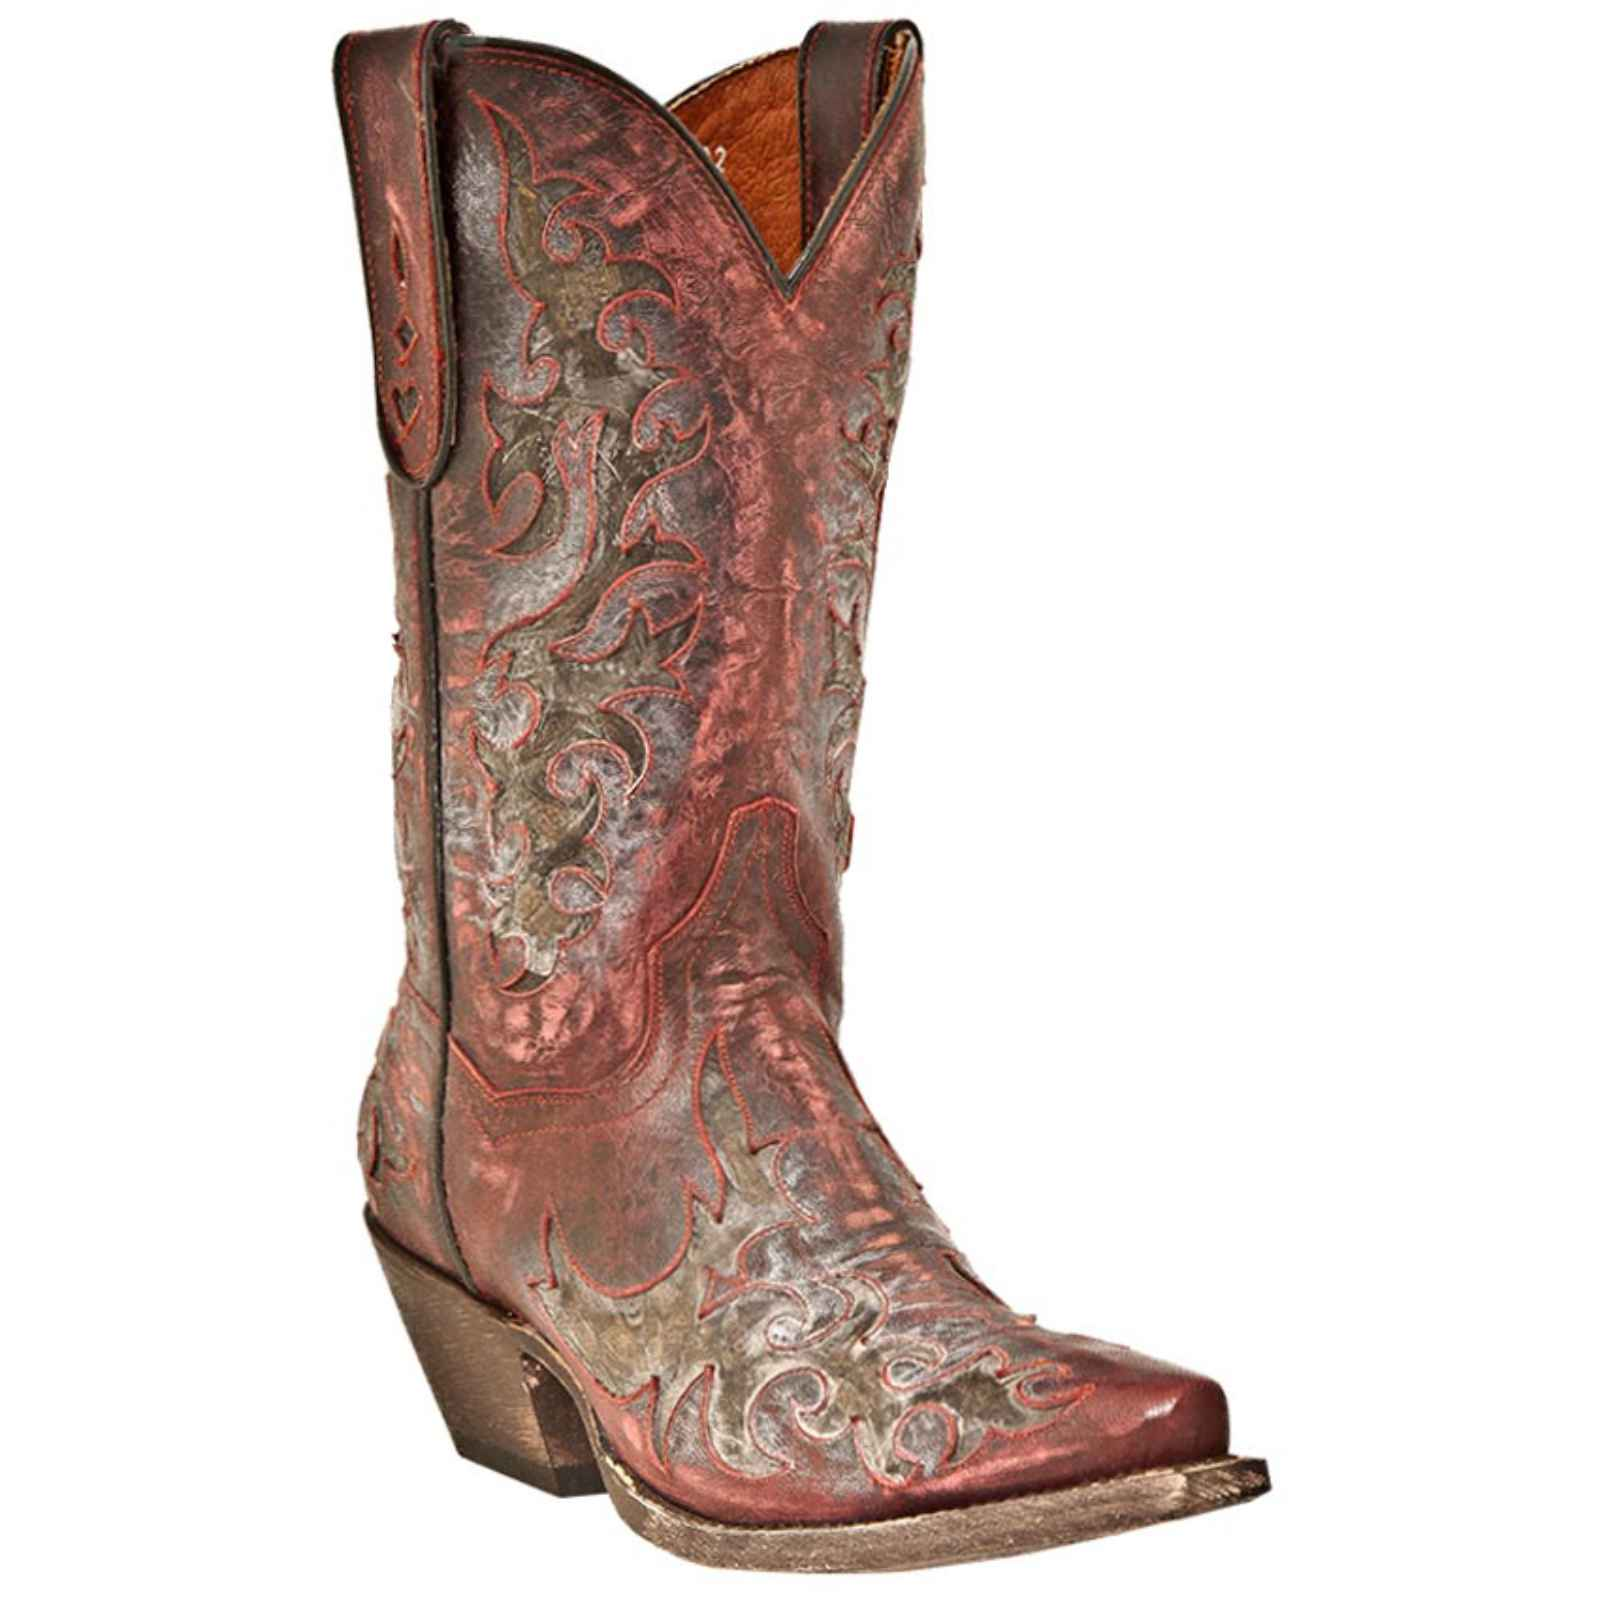 "Dan Post Men's 13"" Red Sanded Zephyr Snip Western Boot, DPP4744 by DAN POST"